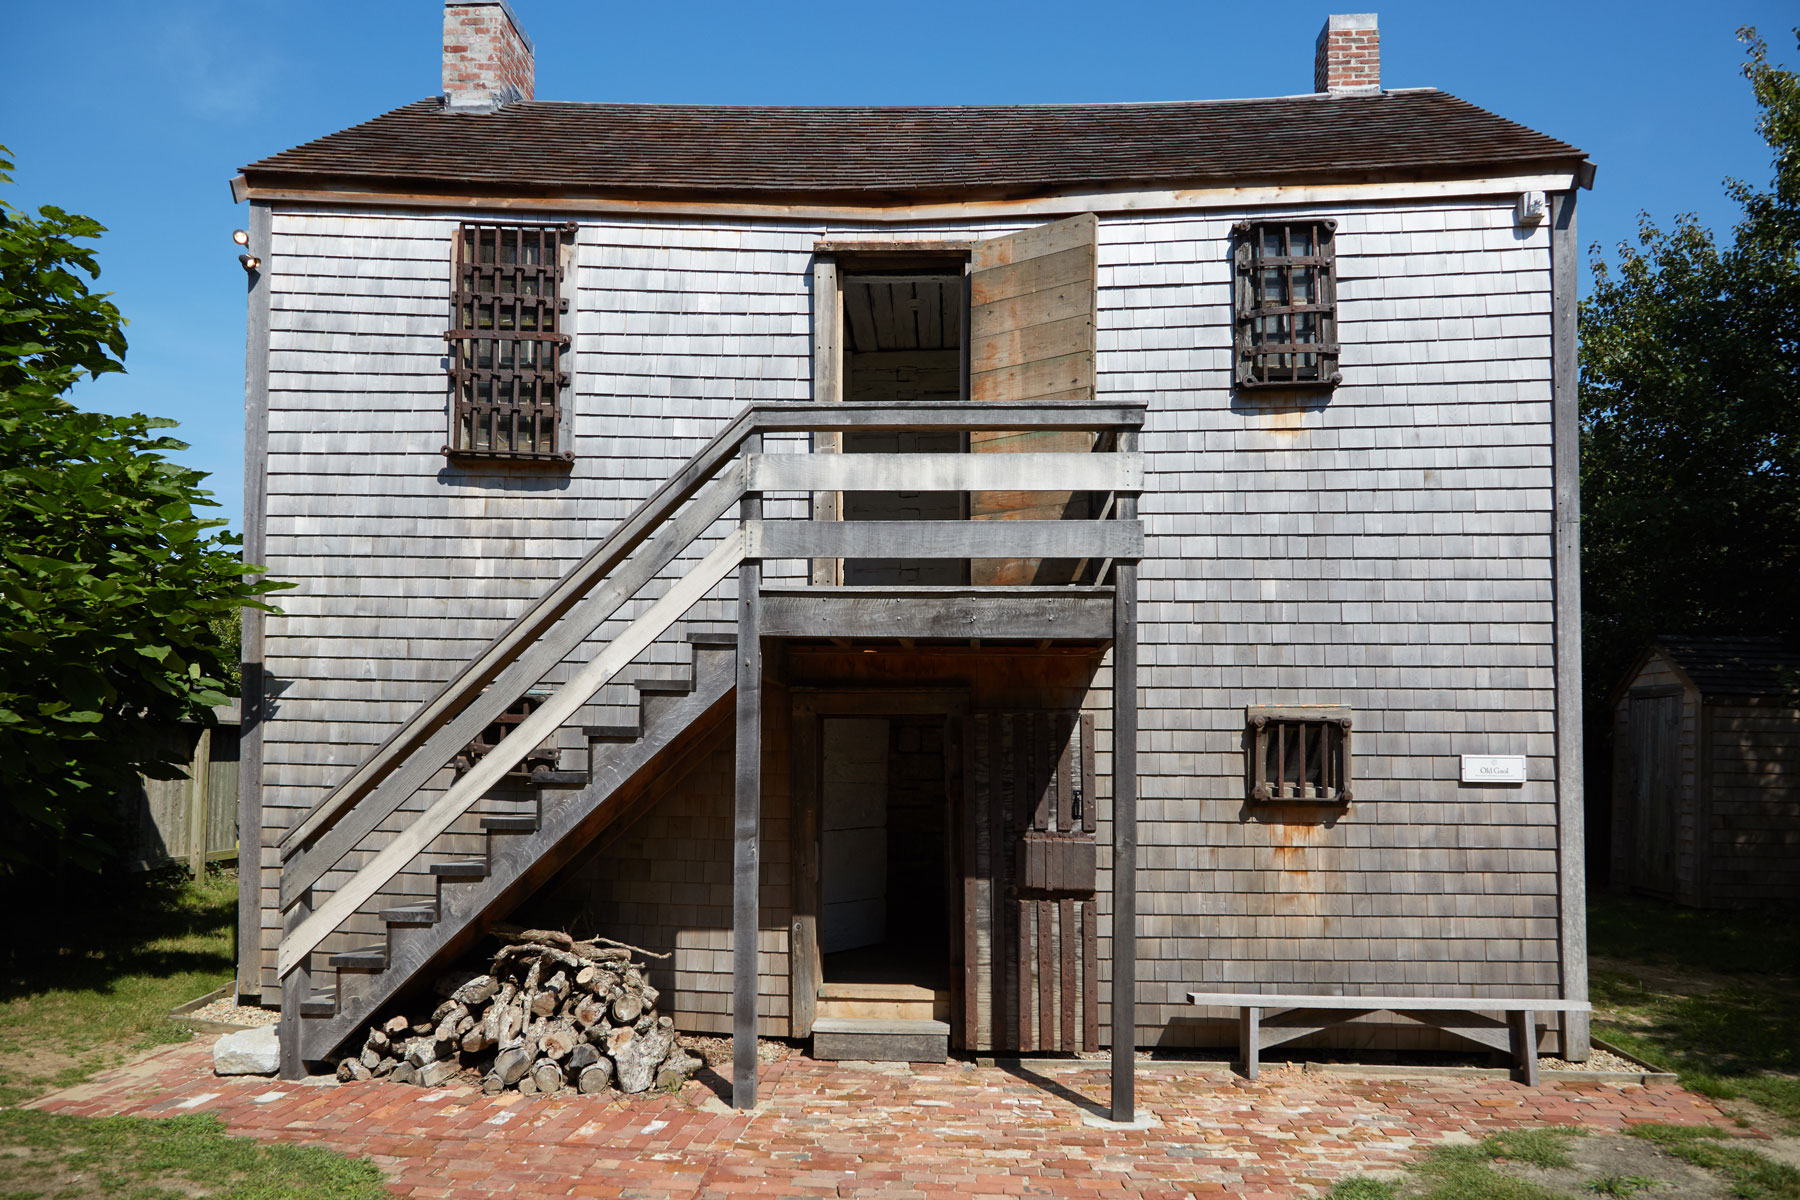 NANTUCKET_OLD_GAOL_0455.jpg